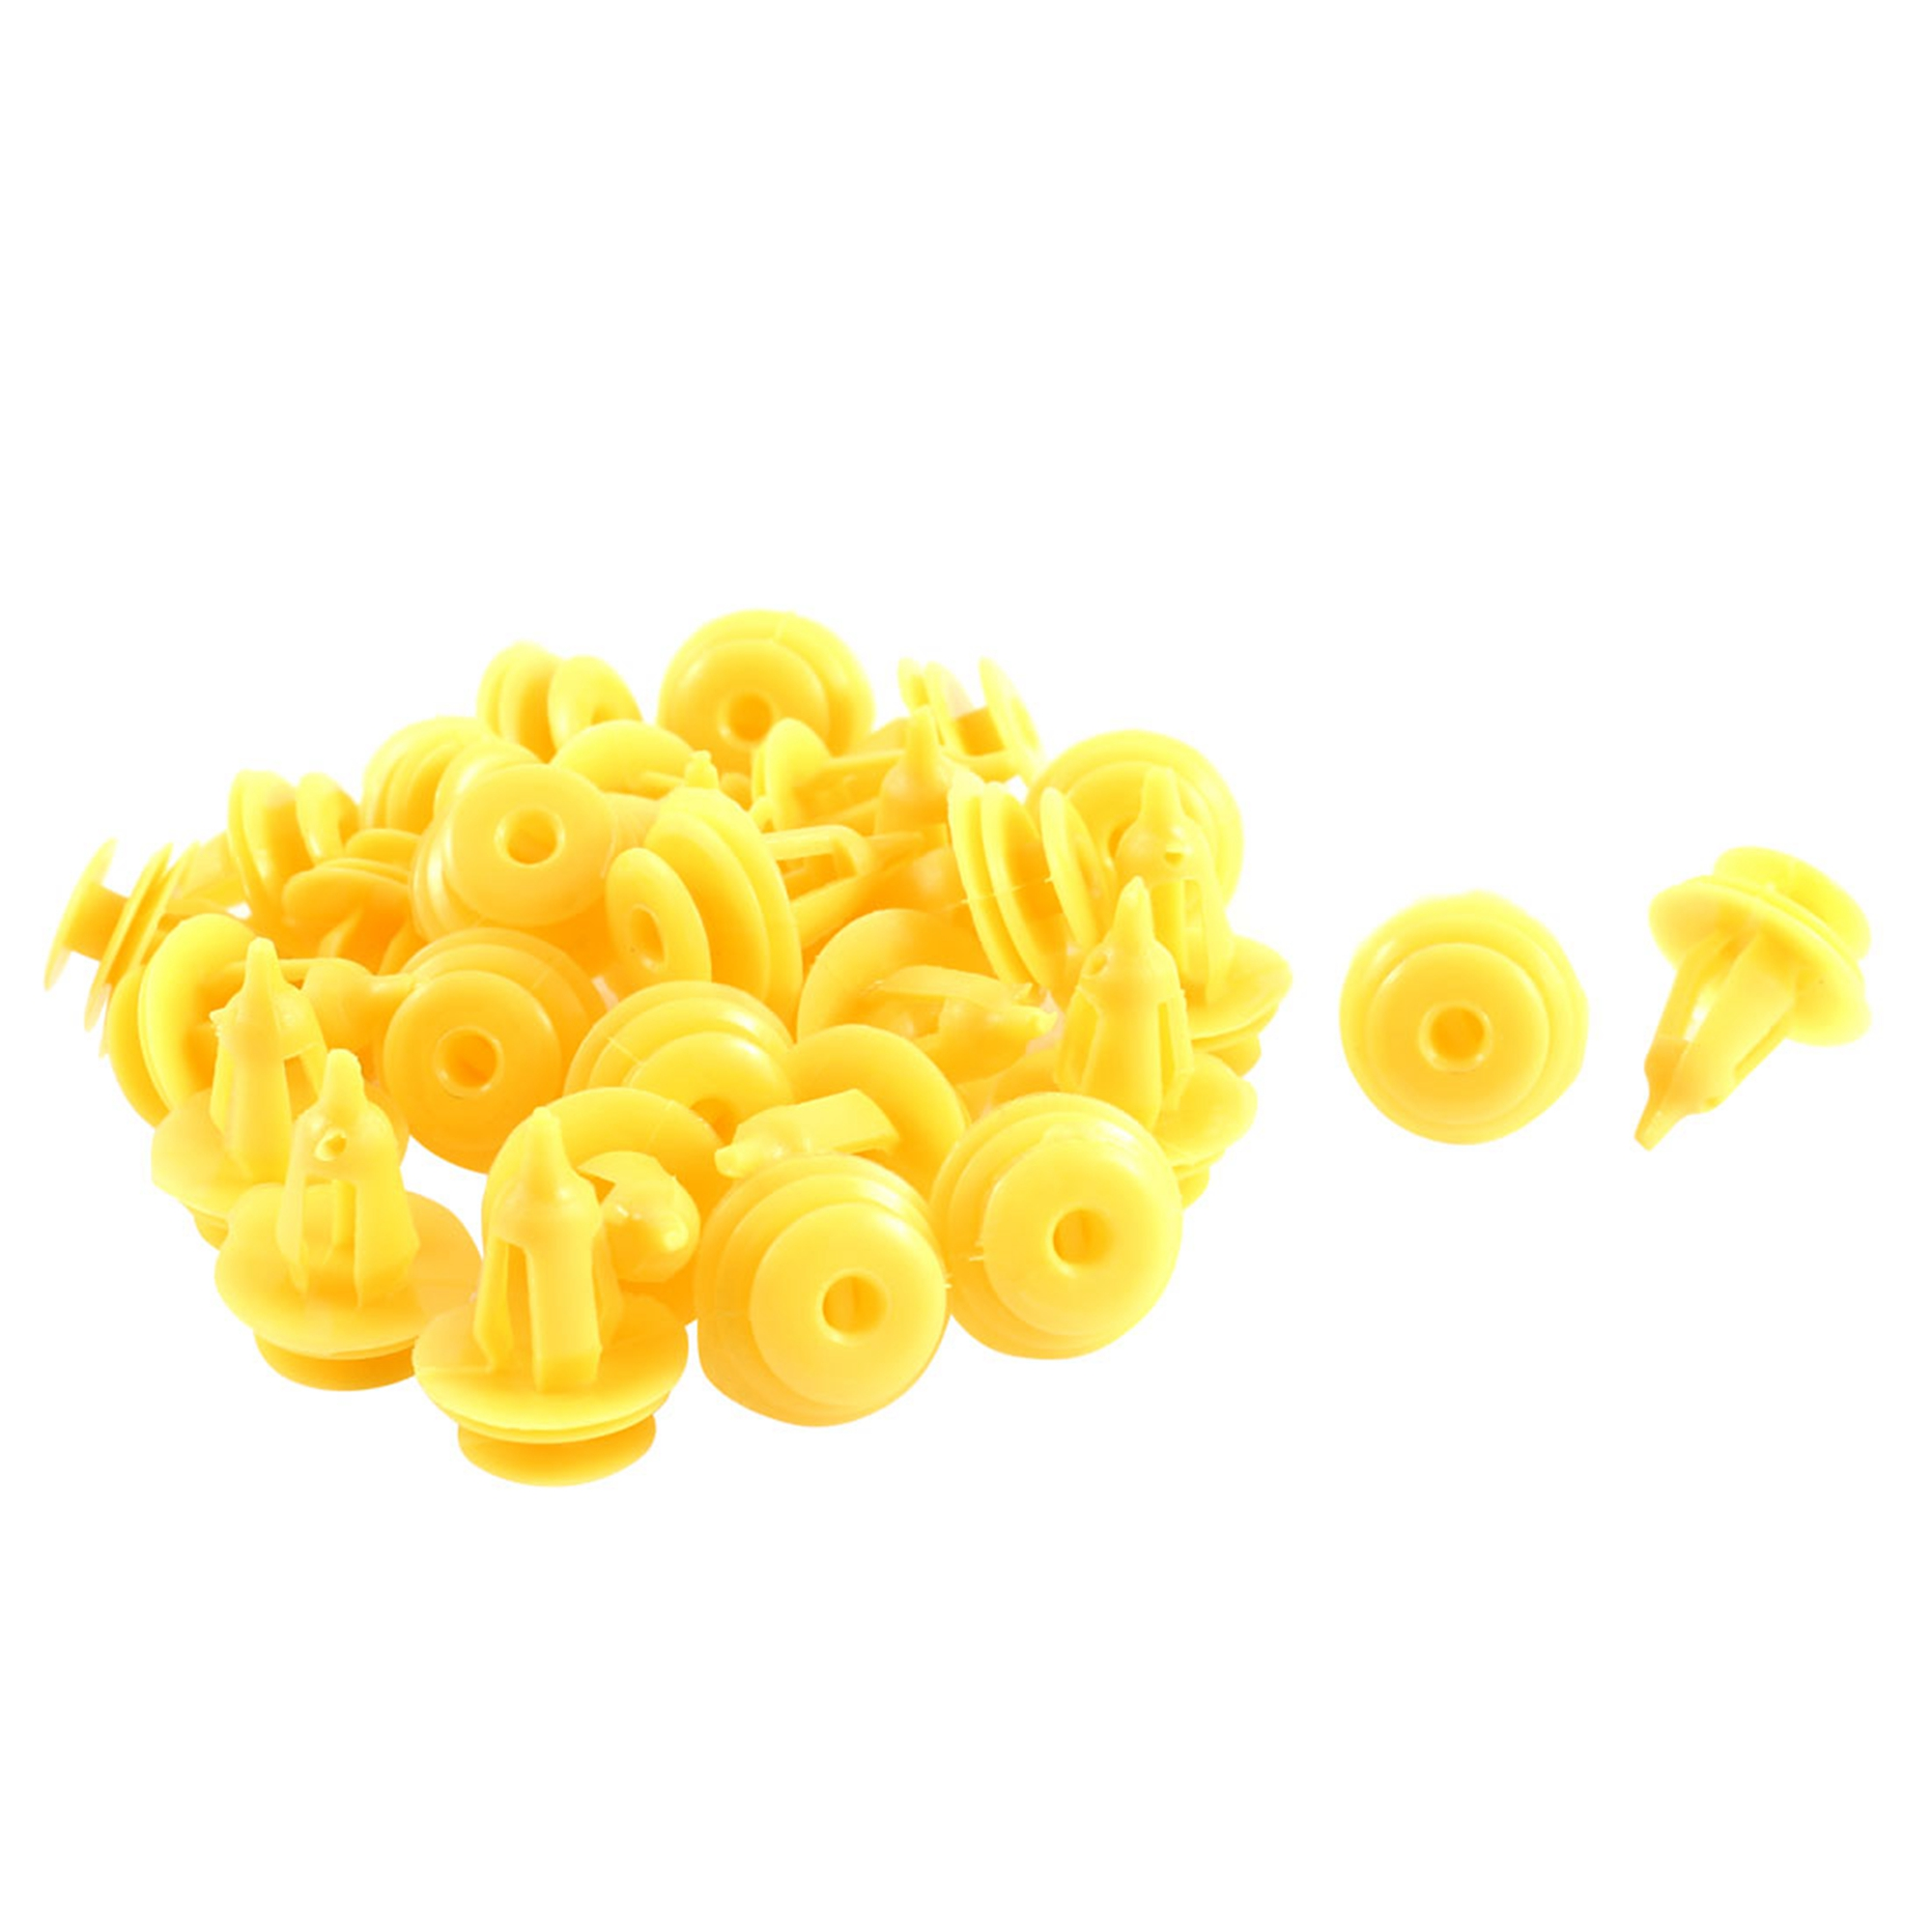 30 Pcs Yellow Plastic Push in Car Bumper Fender Door Rivets Retainer Clip 9mm Hole for Toyota